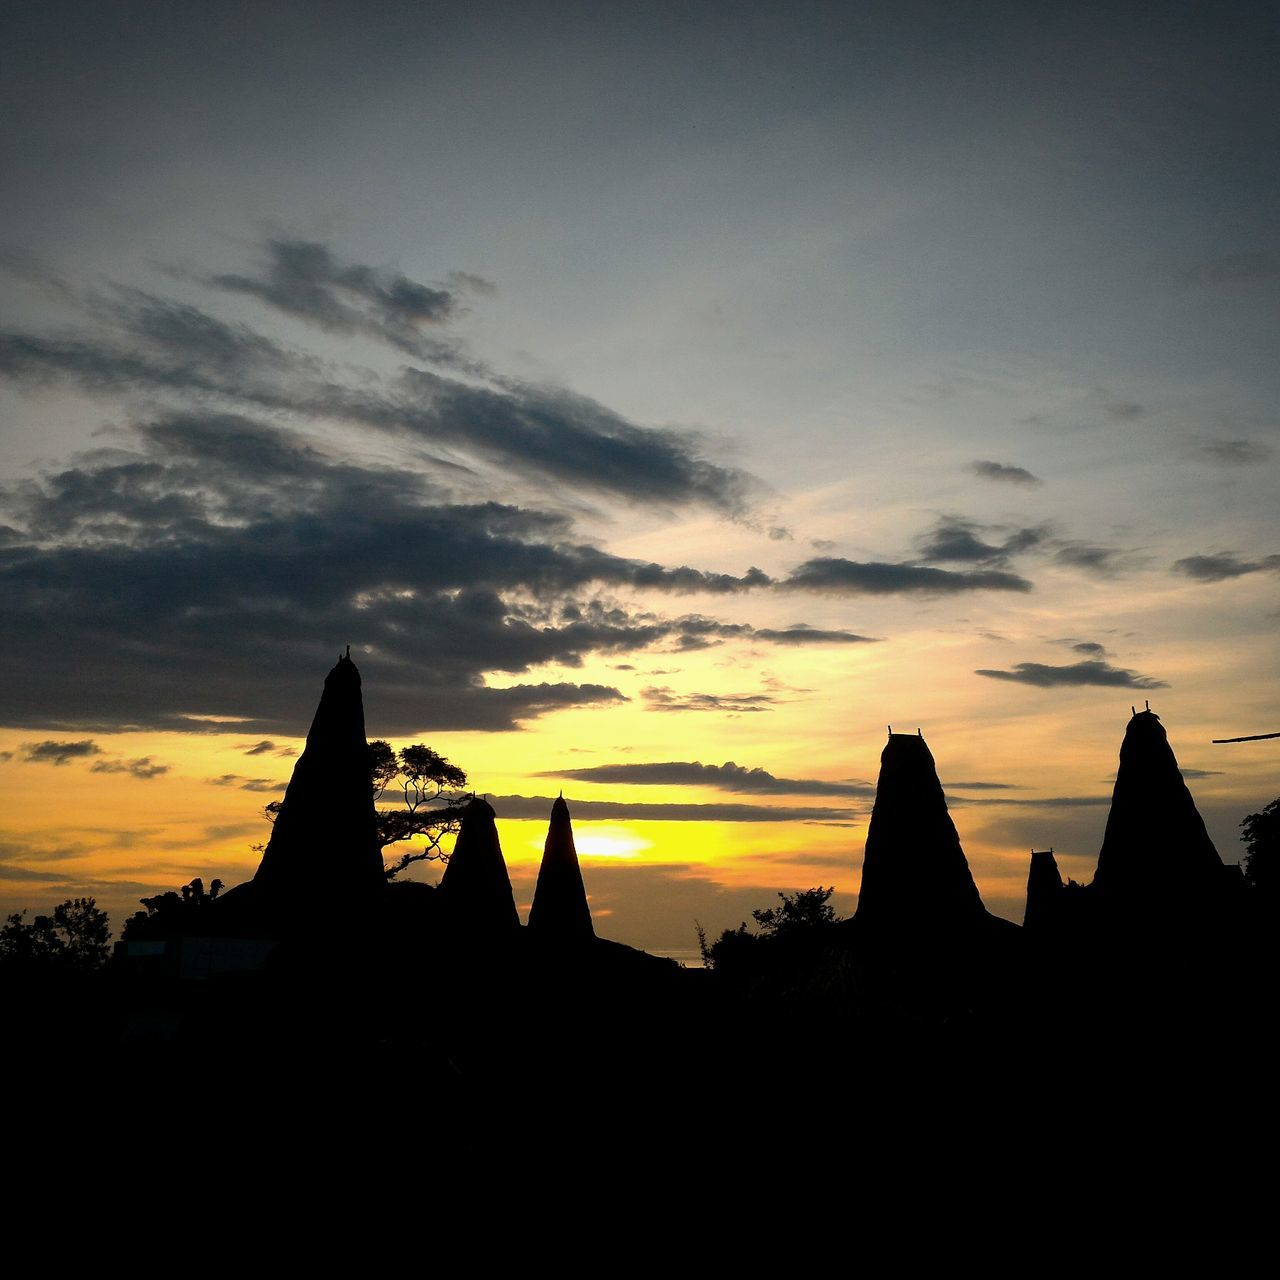 Sunset @ traditional village. Sunset Religion Architecture Built Structure Sumba Barat Daya No People Day Kodi Nature Outdoors Silhouette Sky Building Exterior Indonesia_photography